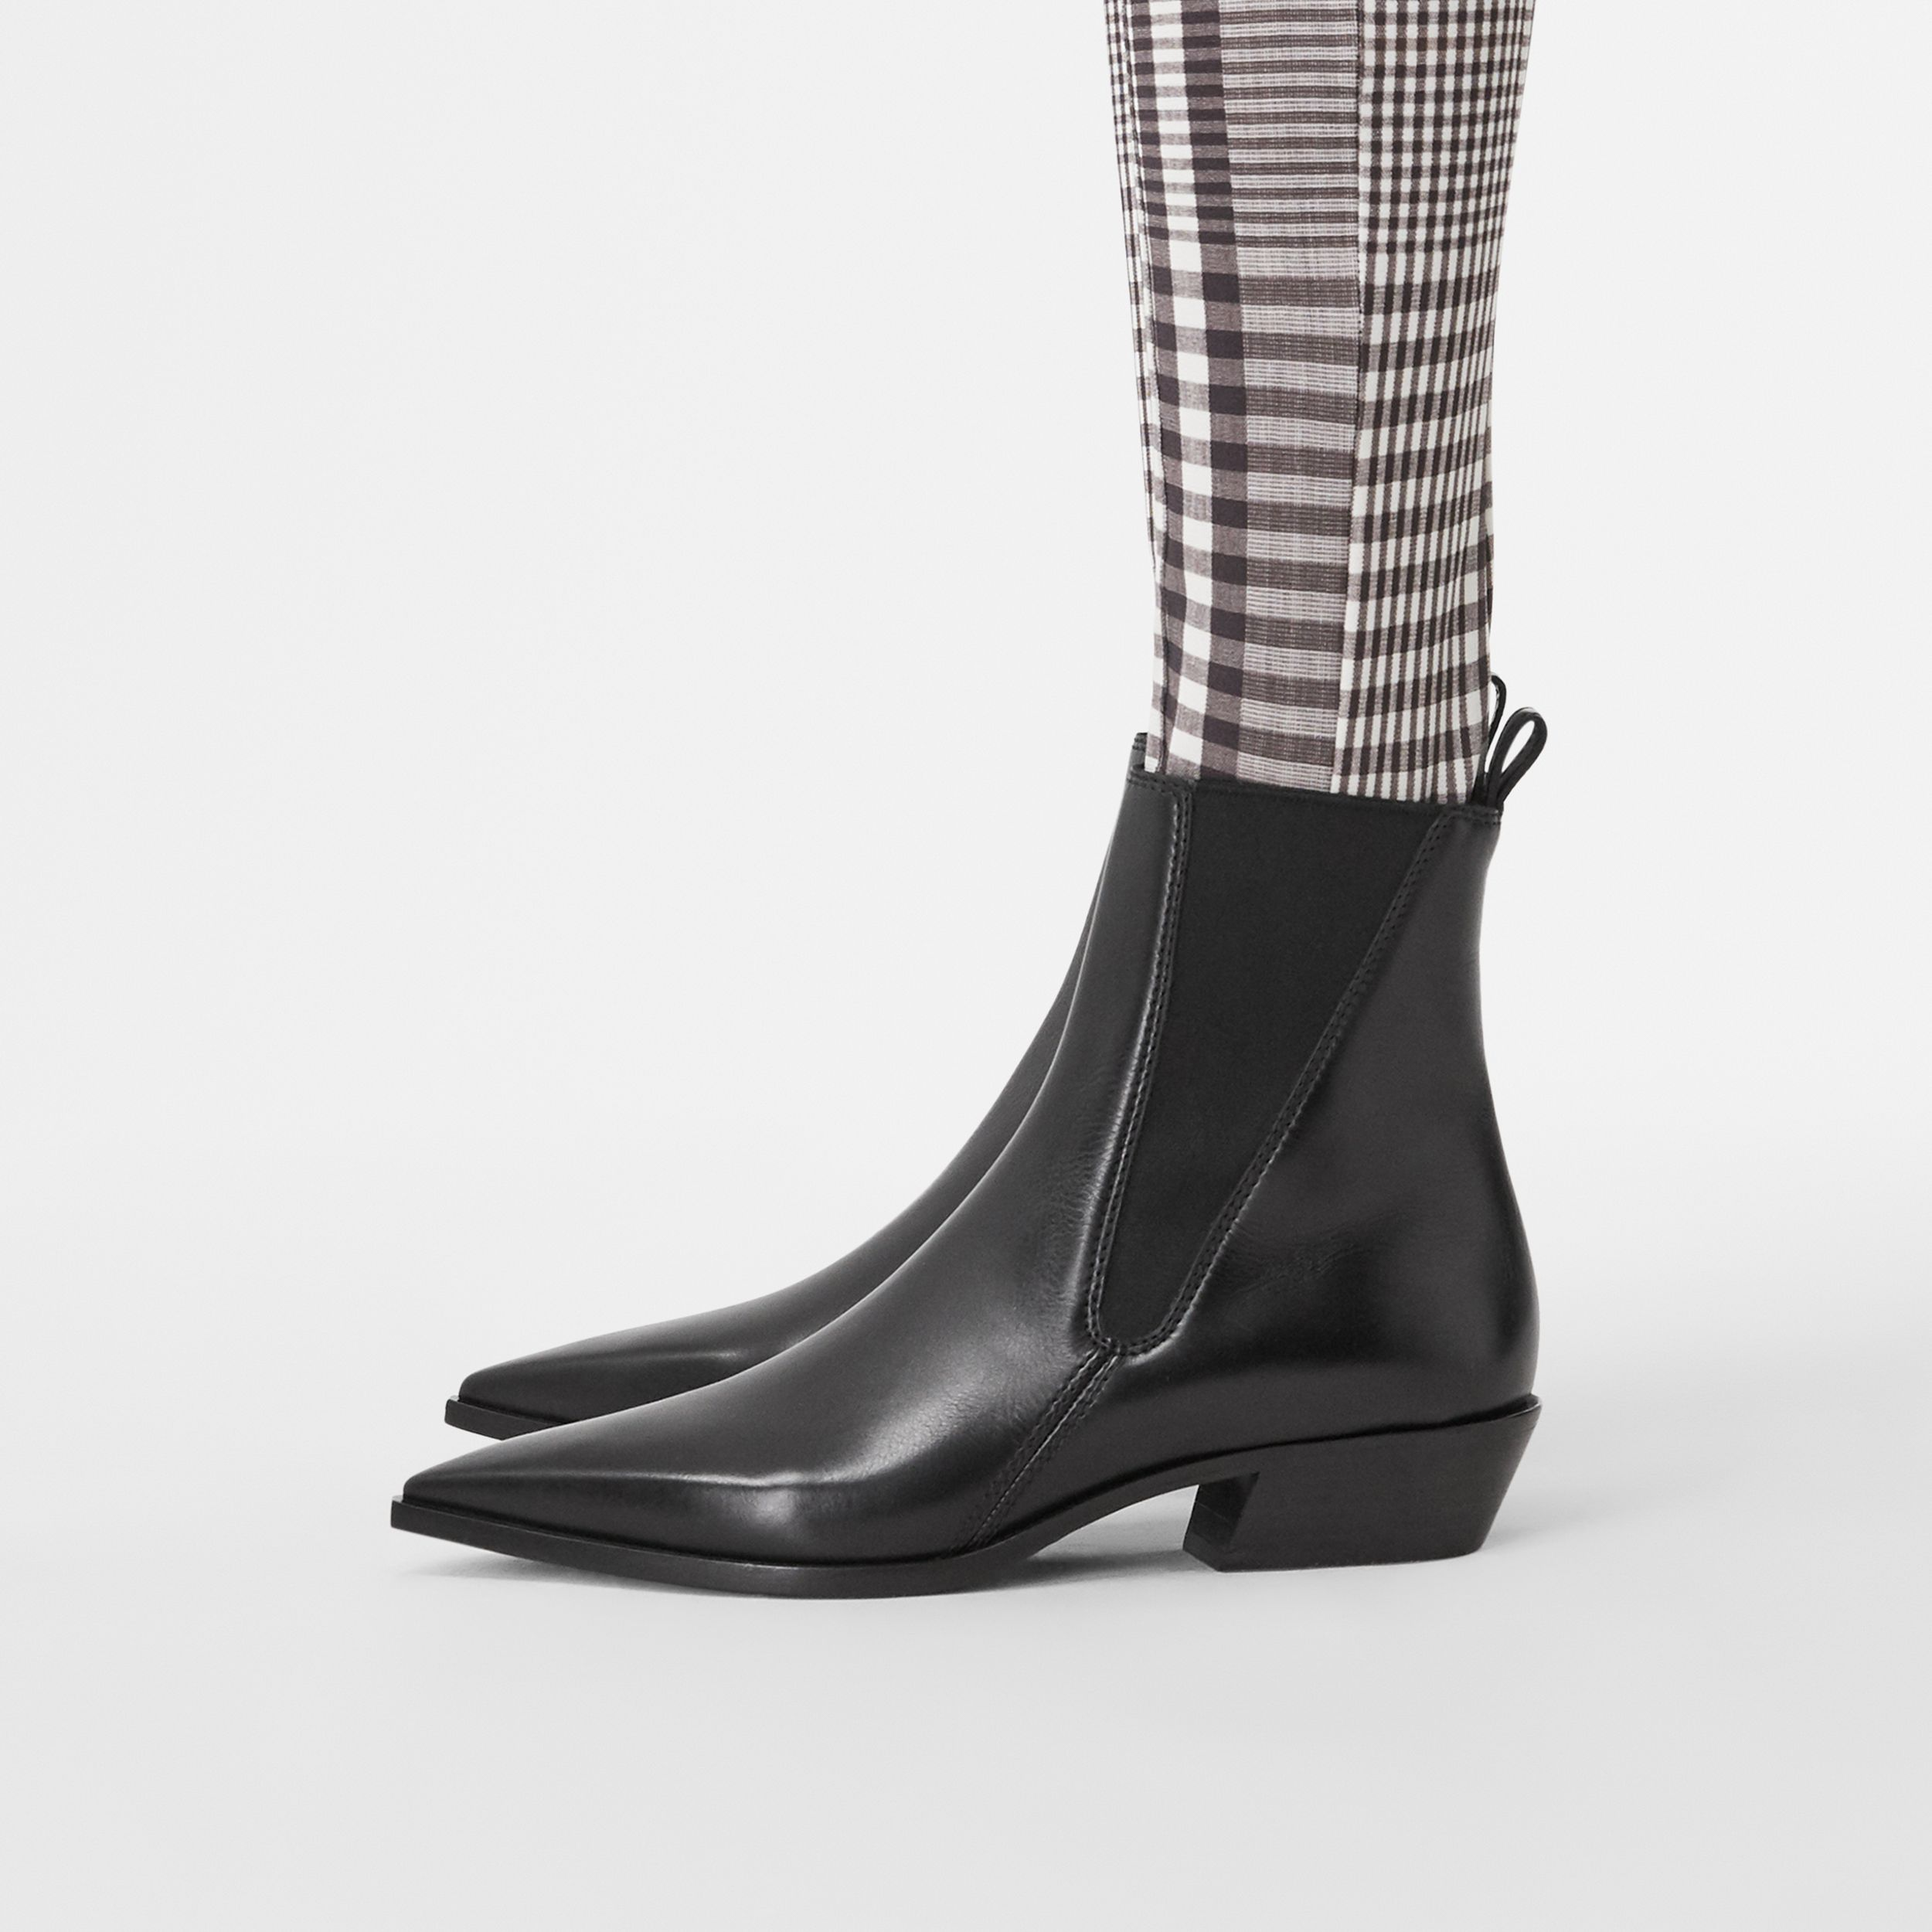 Leather Point-toe Chelsea Boots in Black - Women | Burberry - 3